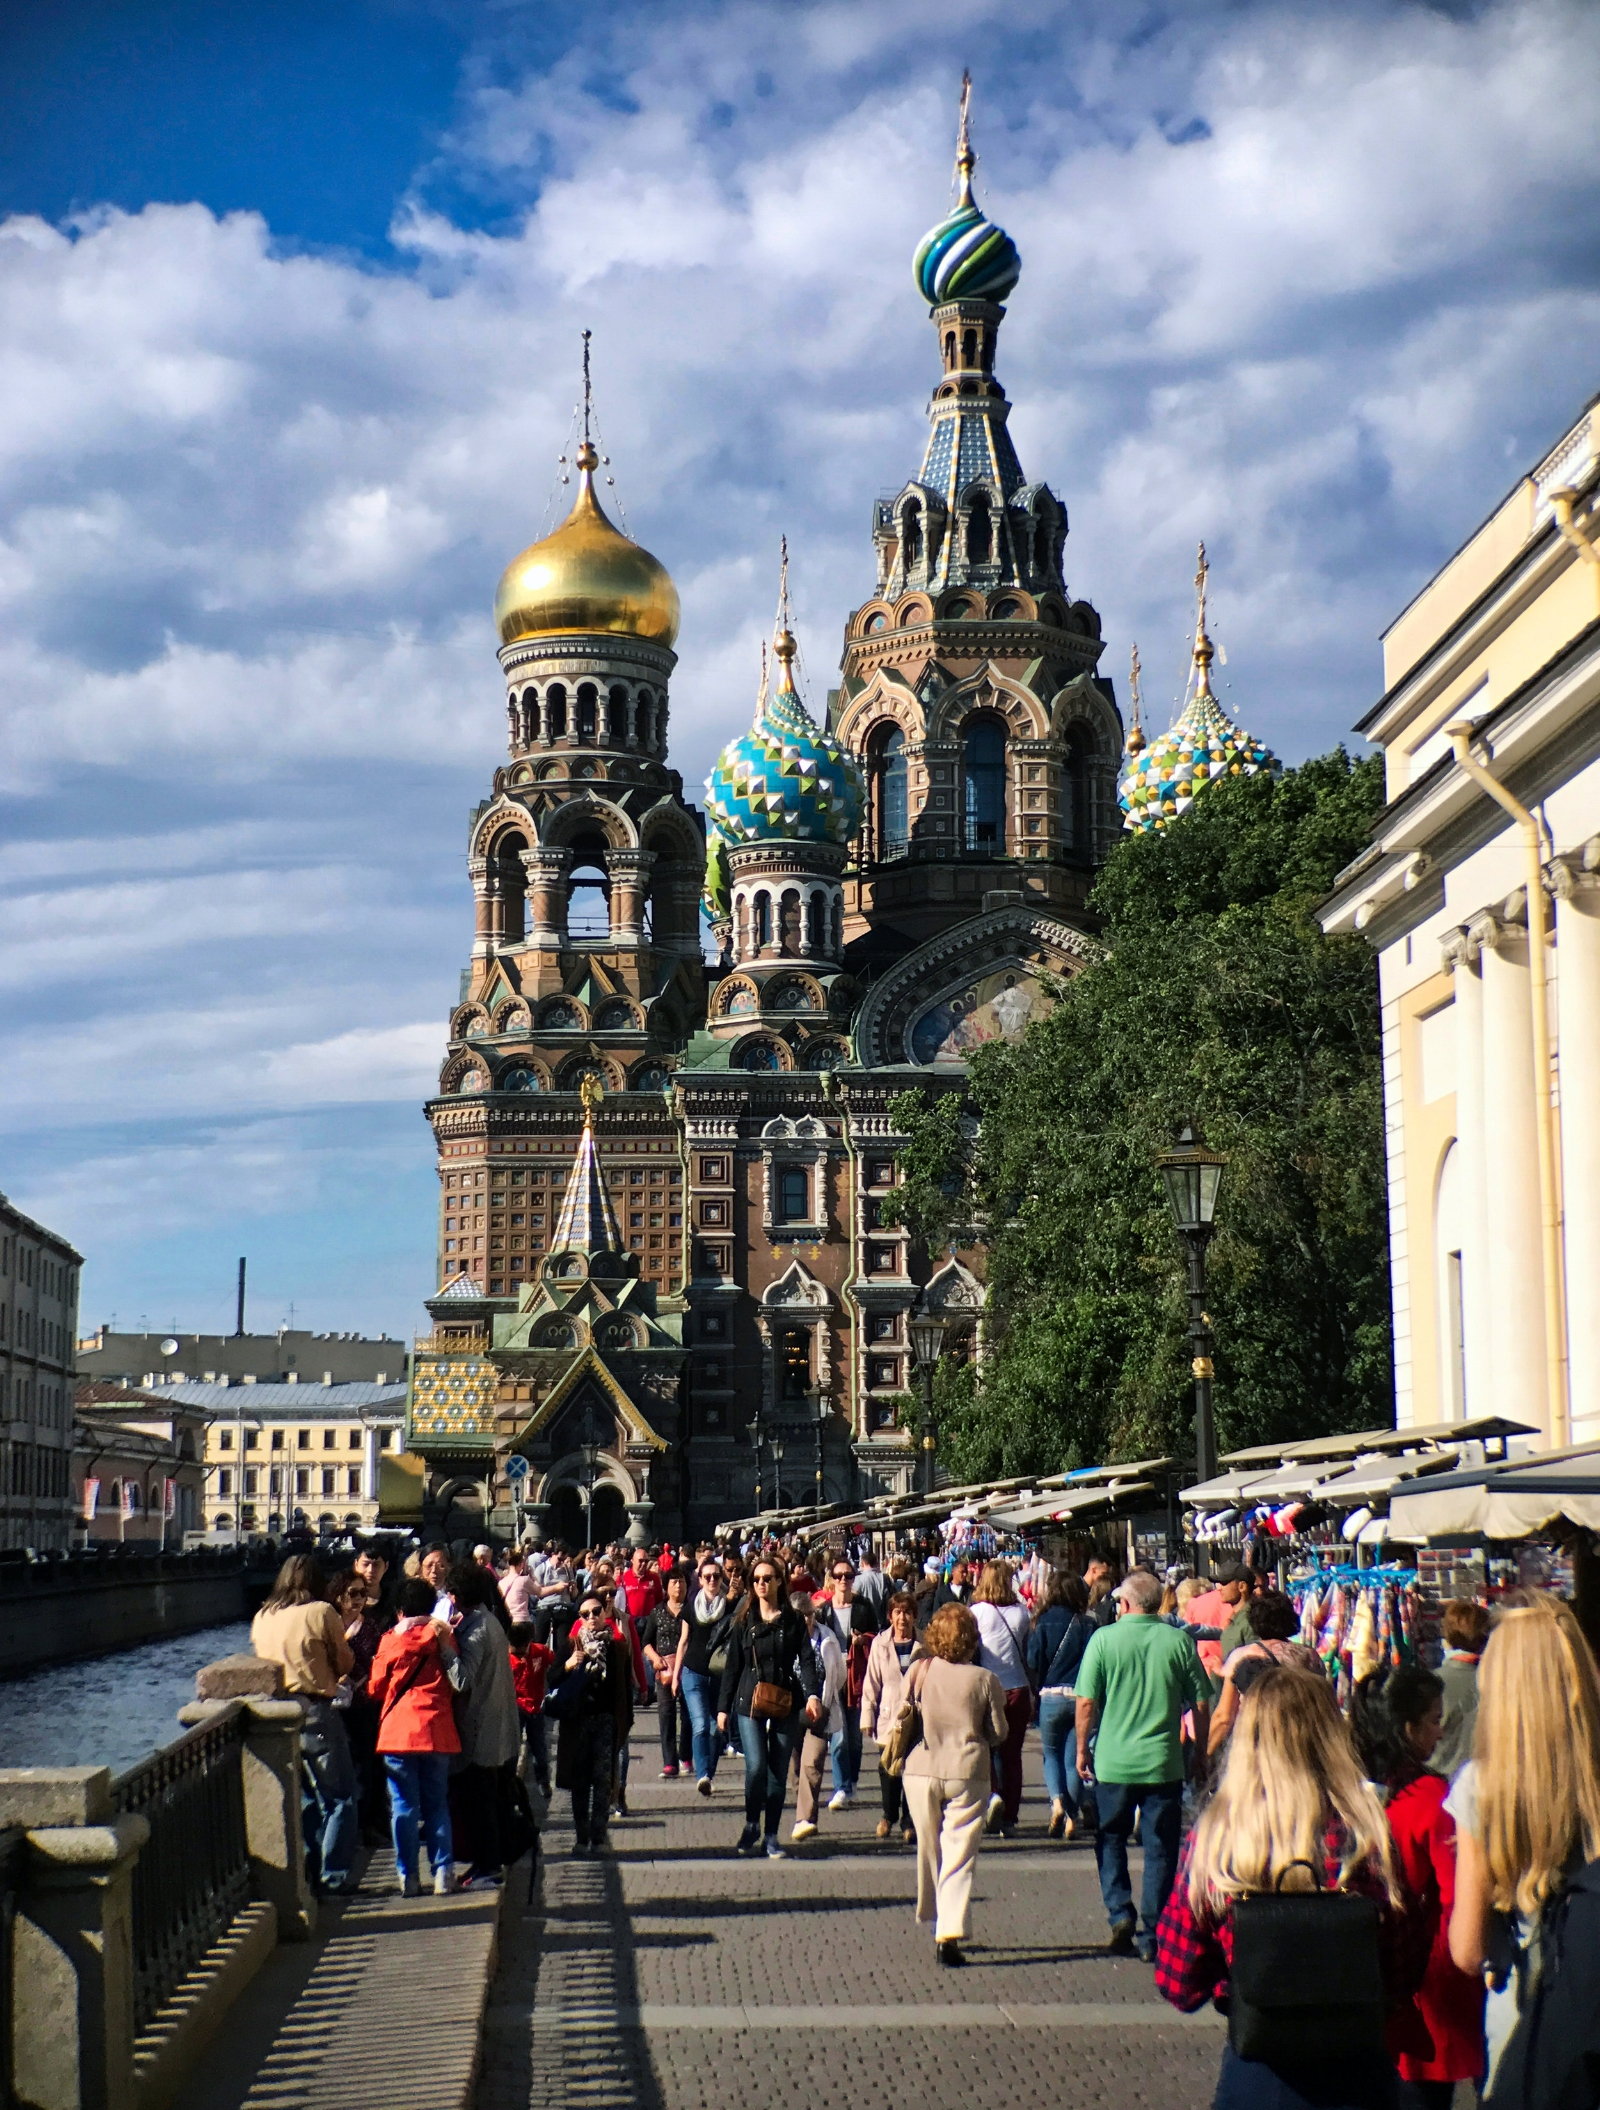 The Church of the Savior on Spilled Blood was built on the site where Emperor  Alexander II  was fatally wounded by political nihilists in 1881.